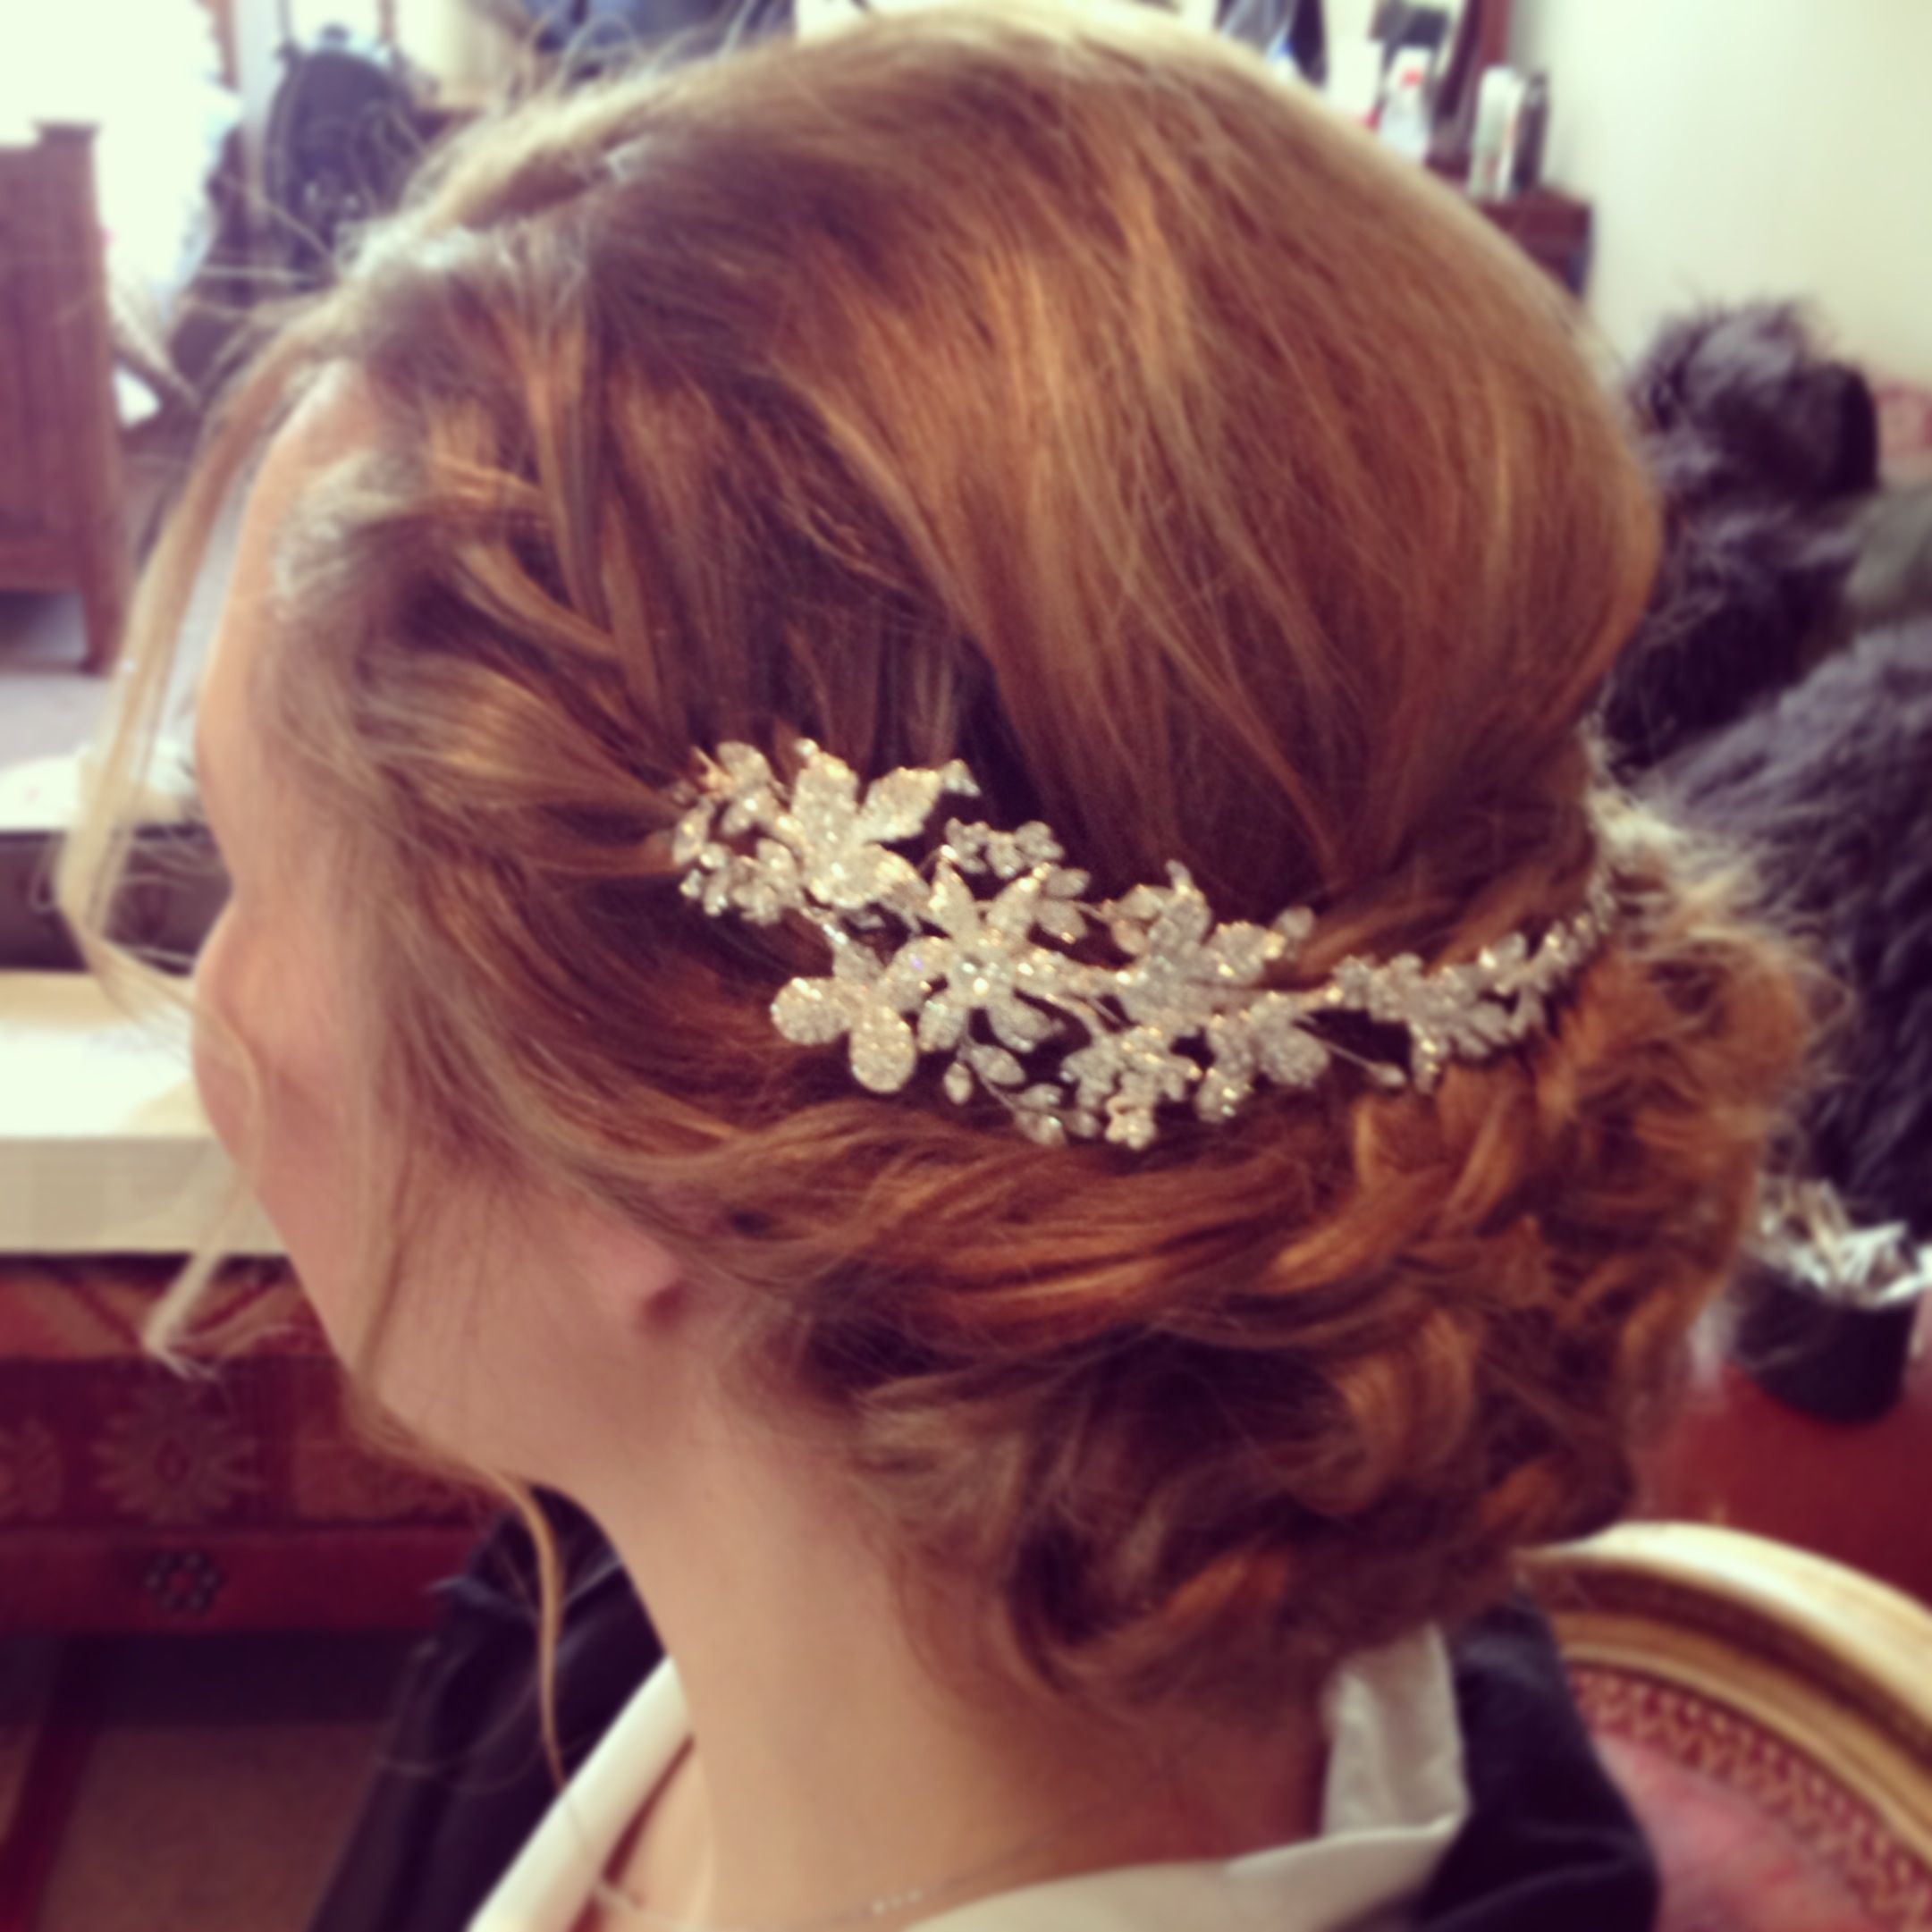 wedding hair bridal braids braid plaits plait hair by lisa cameron